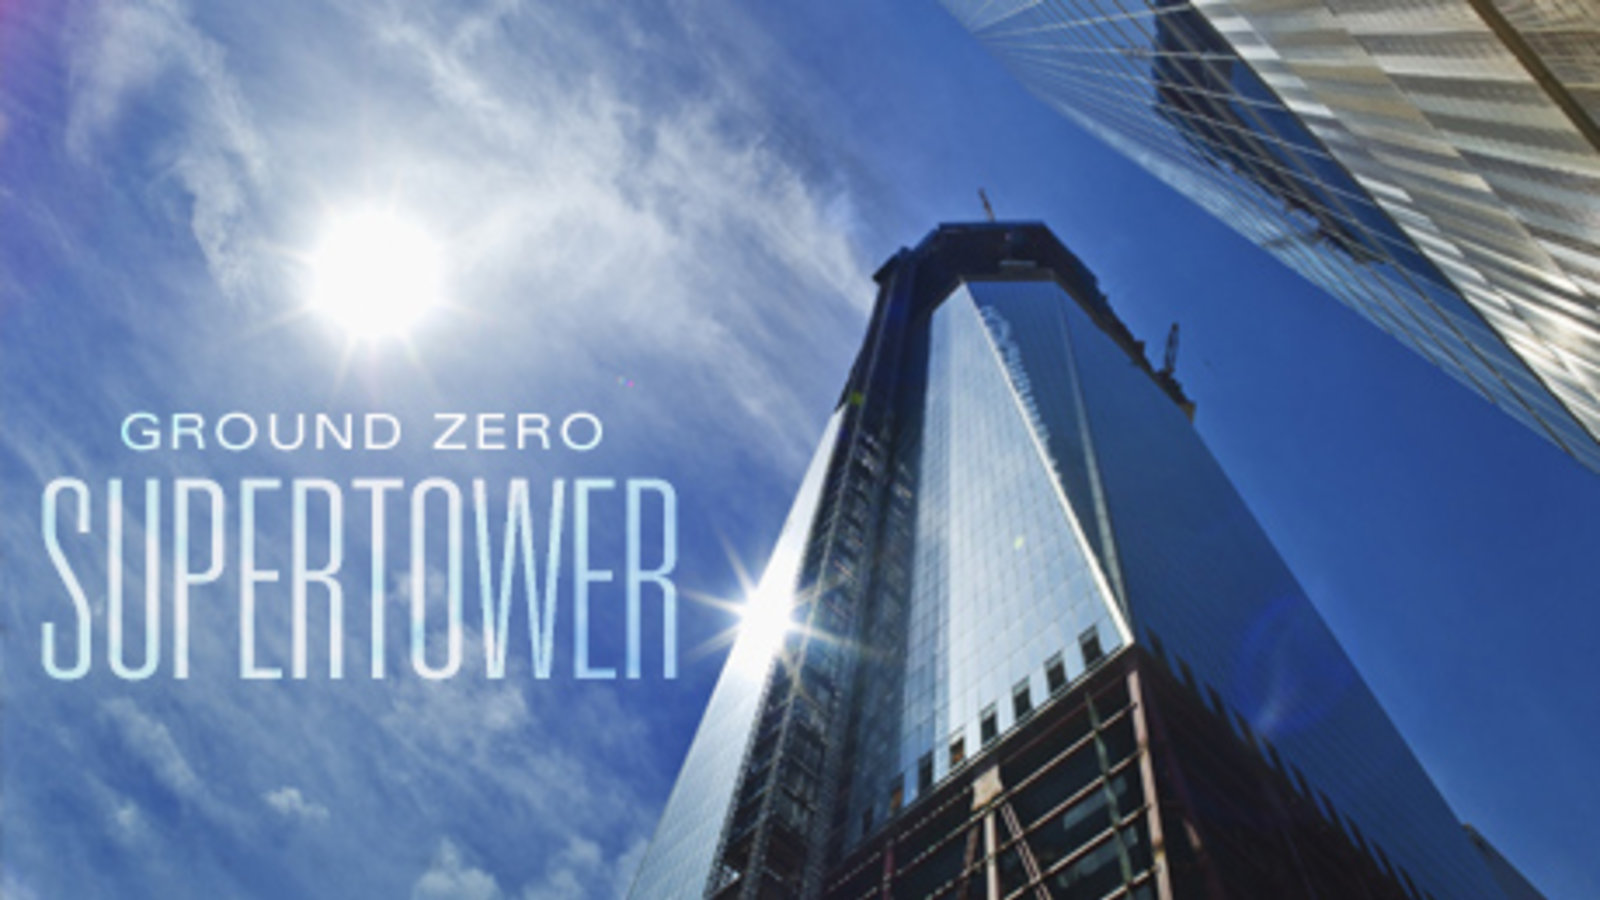 Ground Zero Supertower